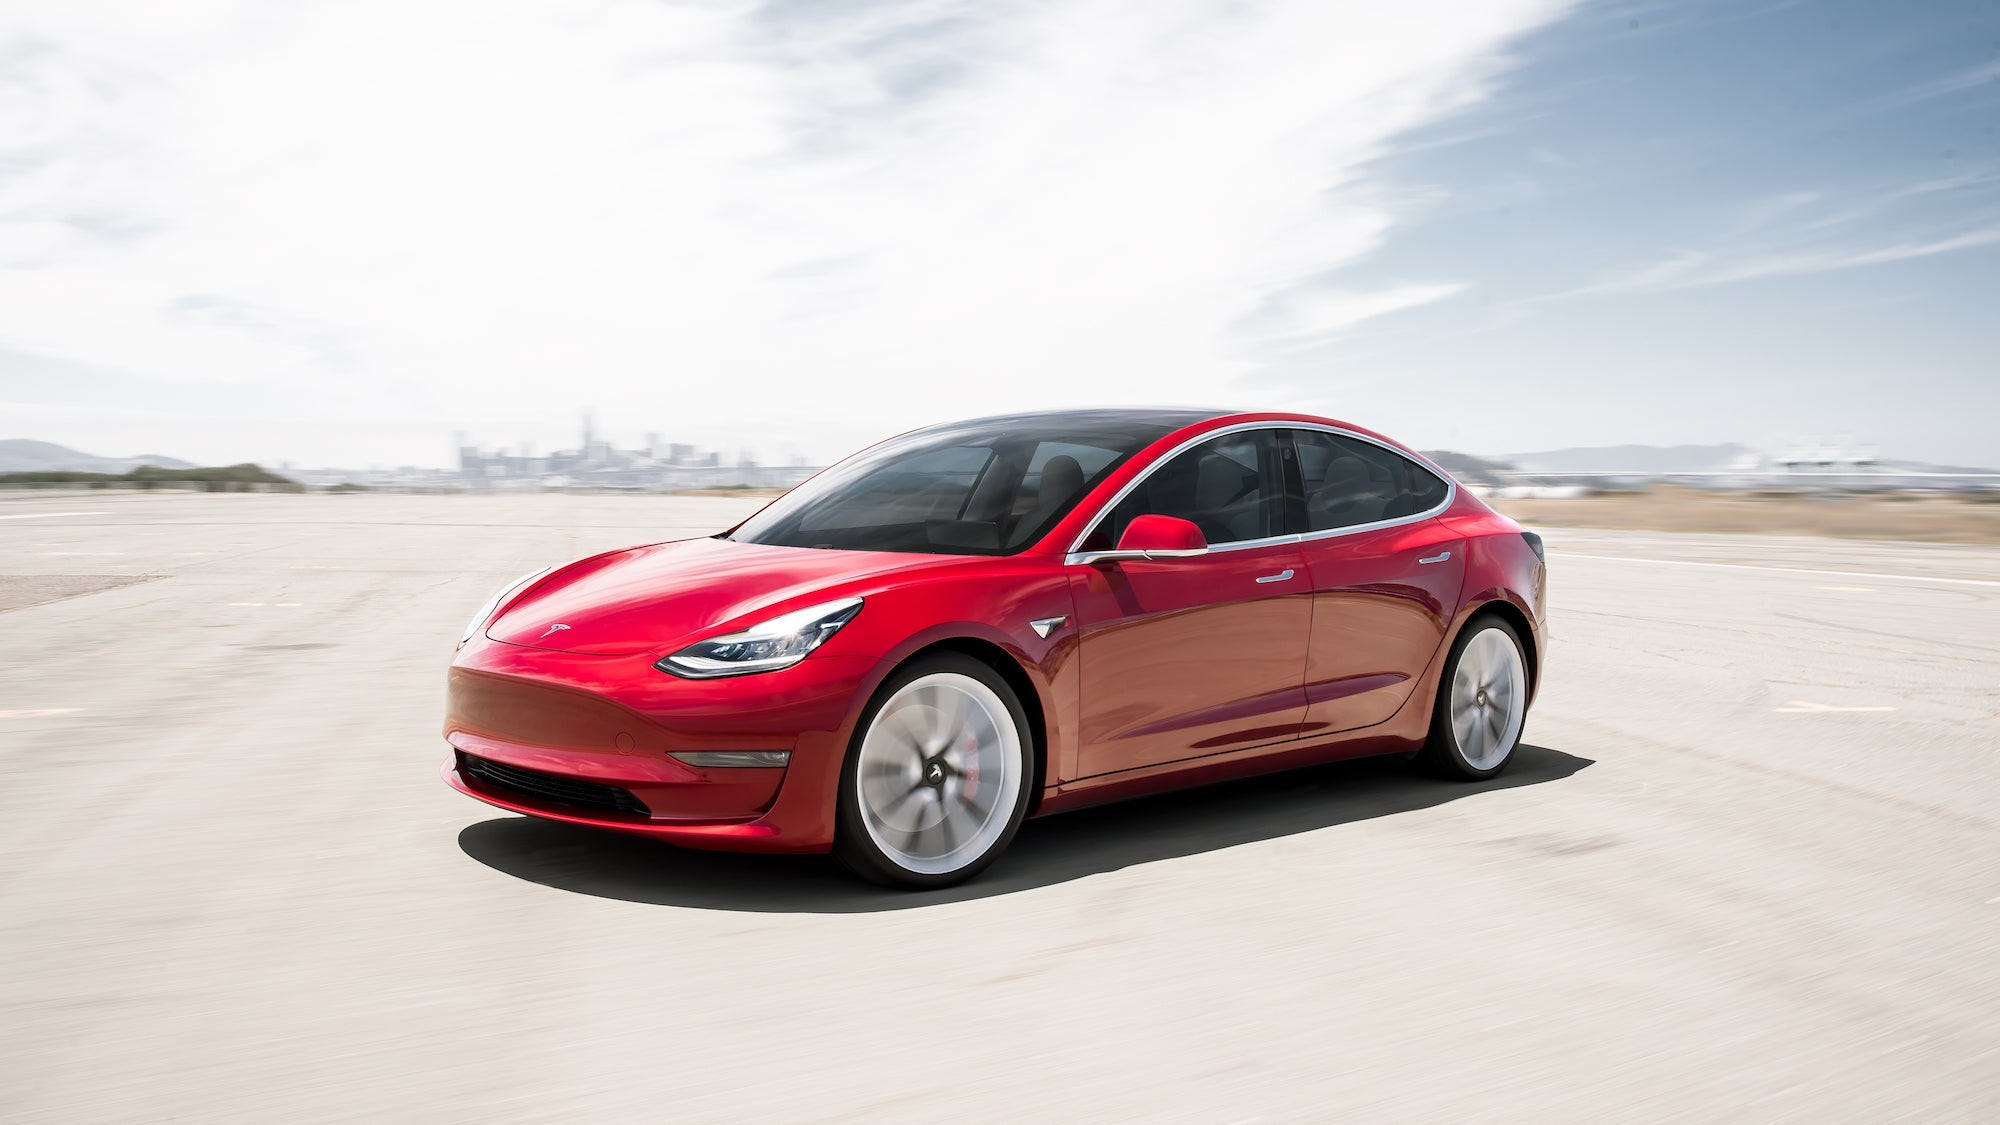 Consumer Reports Top Picks These Are The Top 10 Vehicles Of 2020